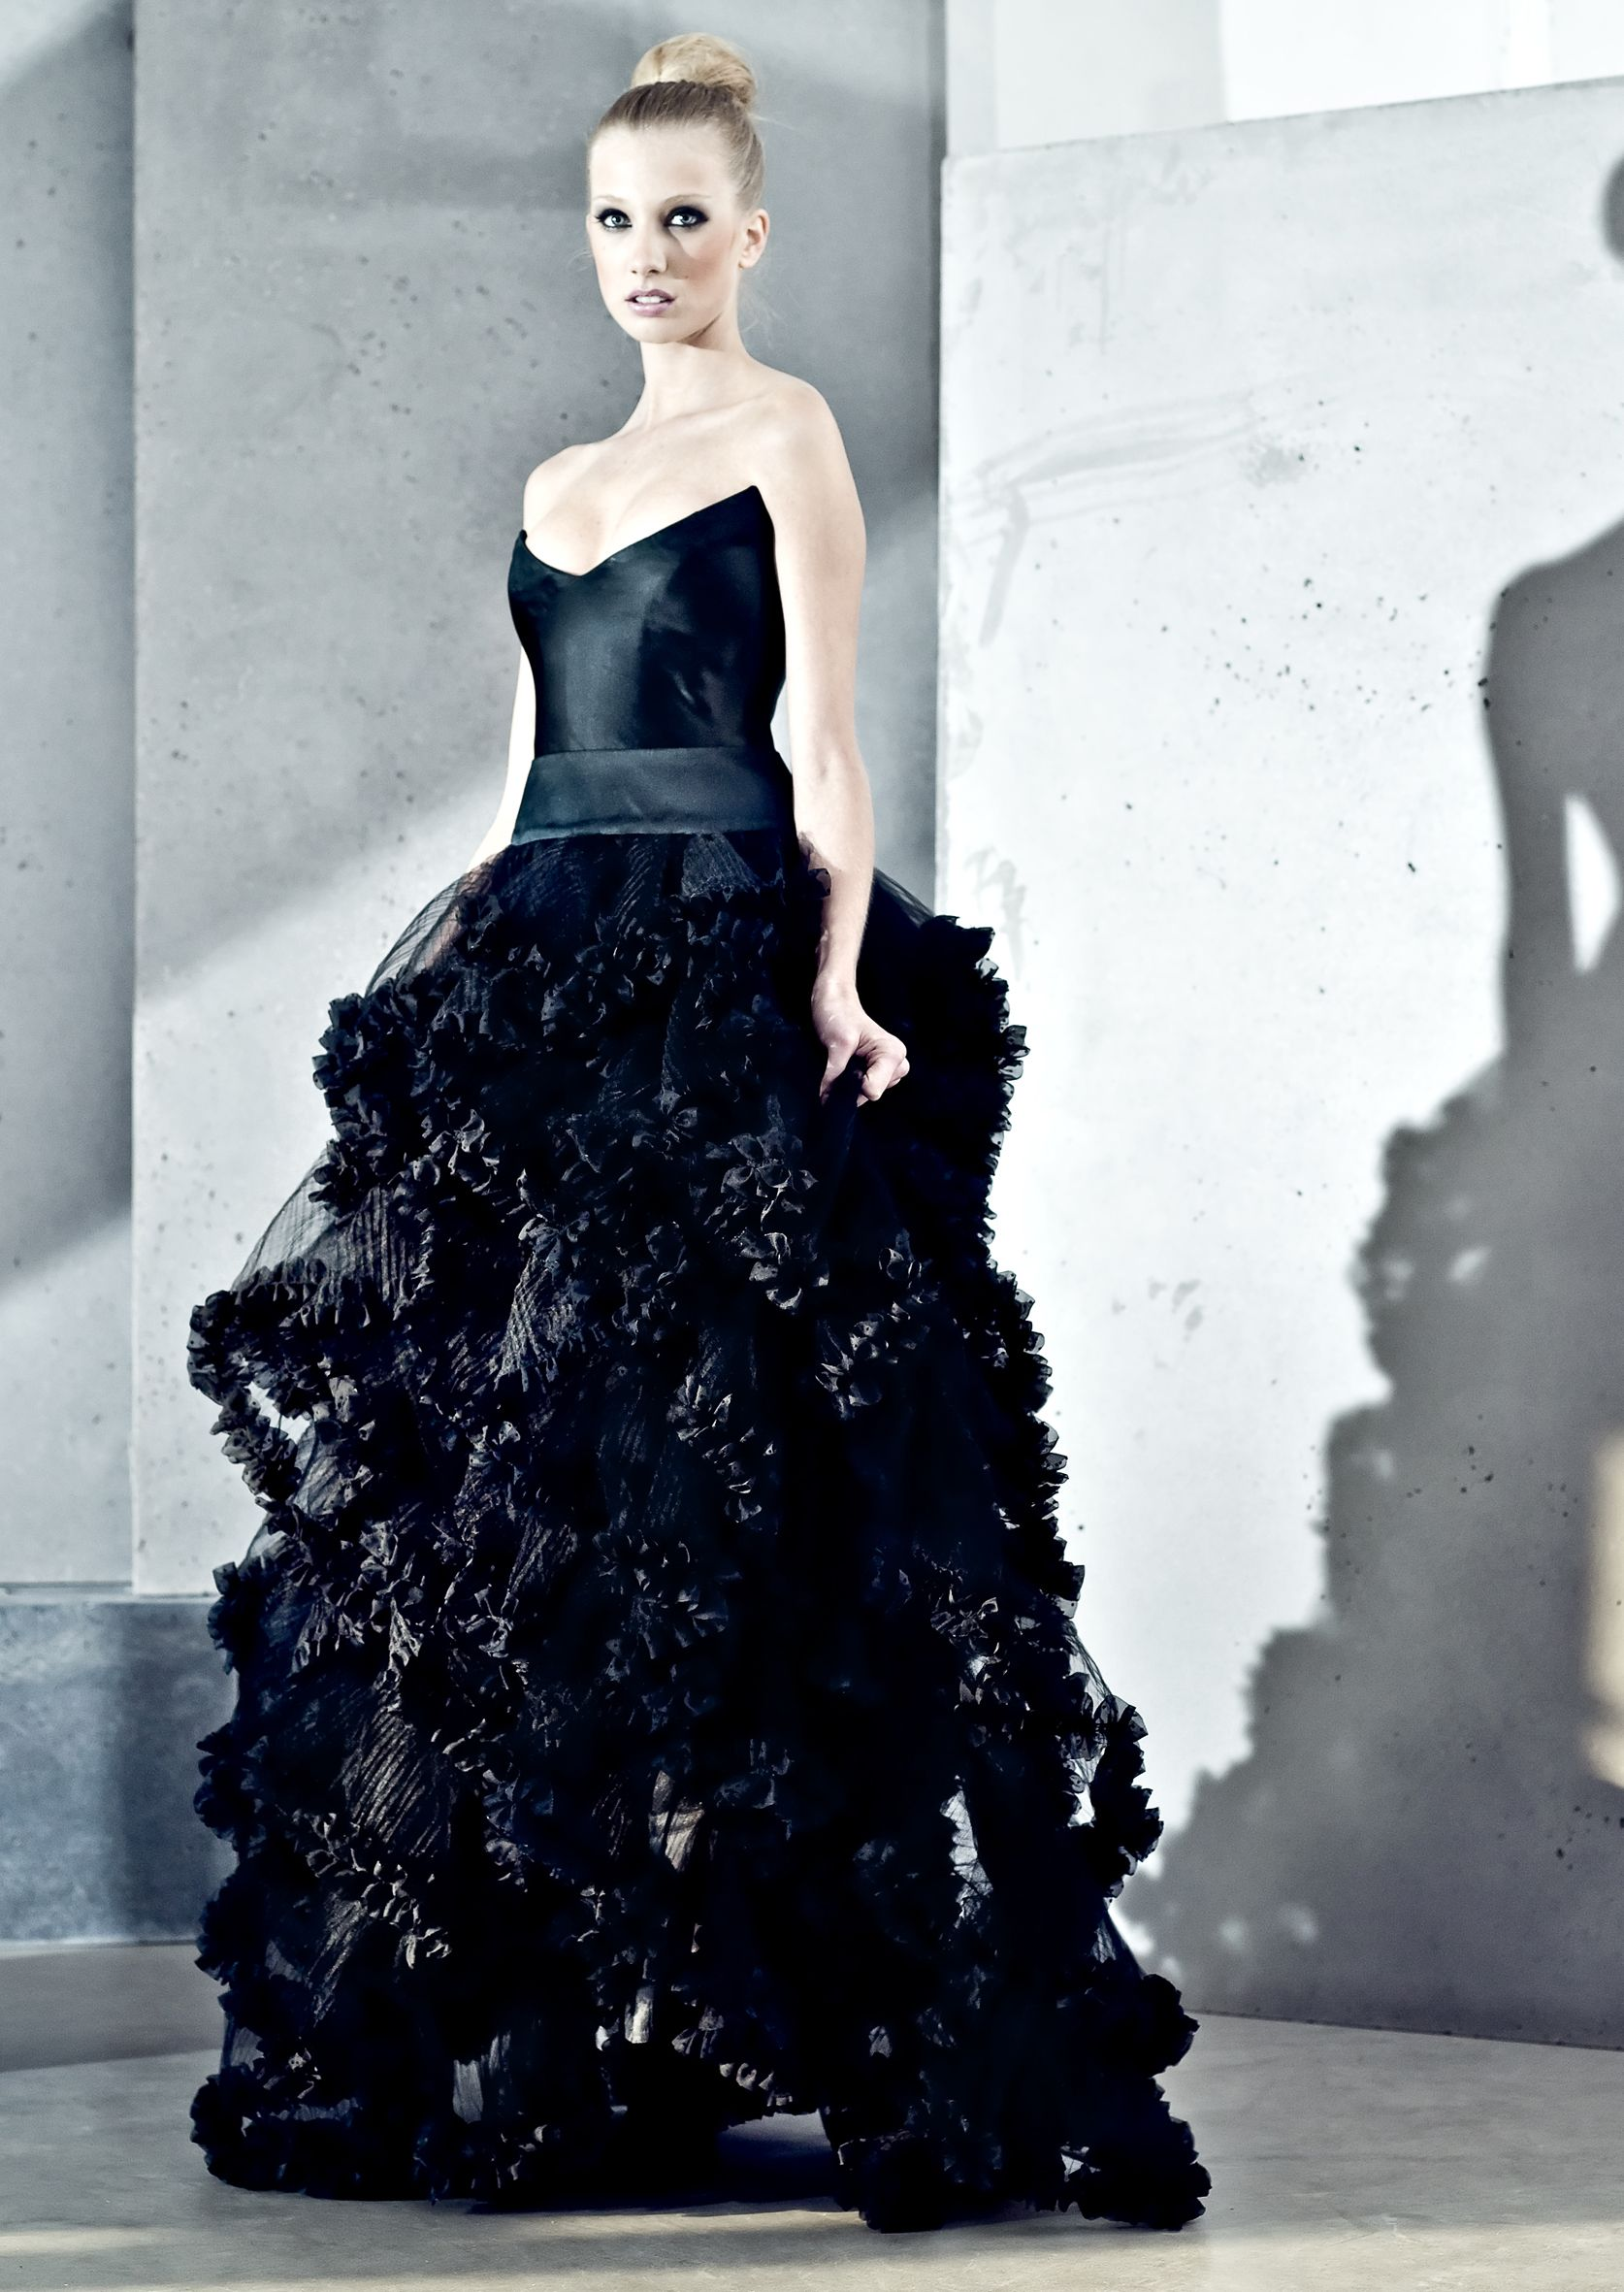 Gorgeously Gothic Amy Atlas Events Black Wedding Dresses Edgy Wedding Dress Goth Wedding Dresses